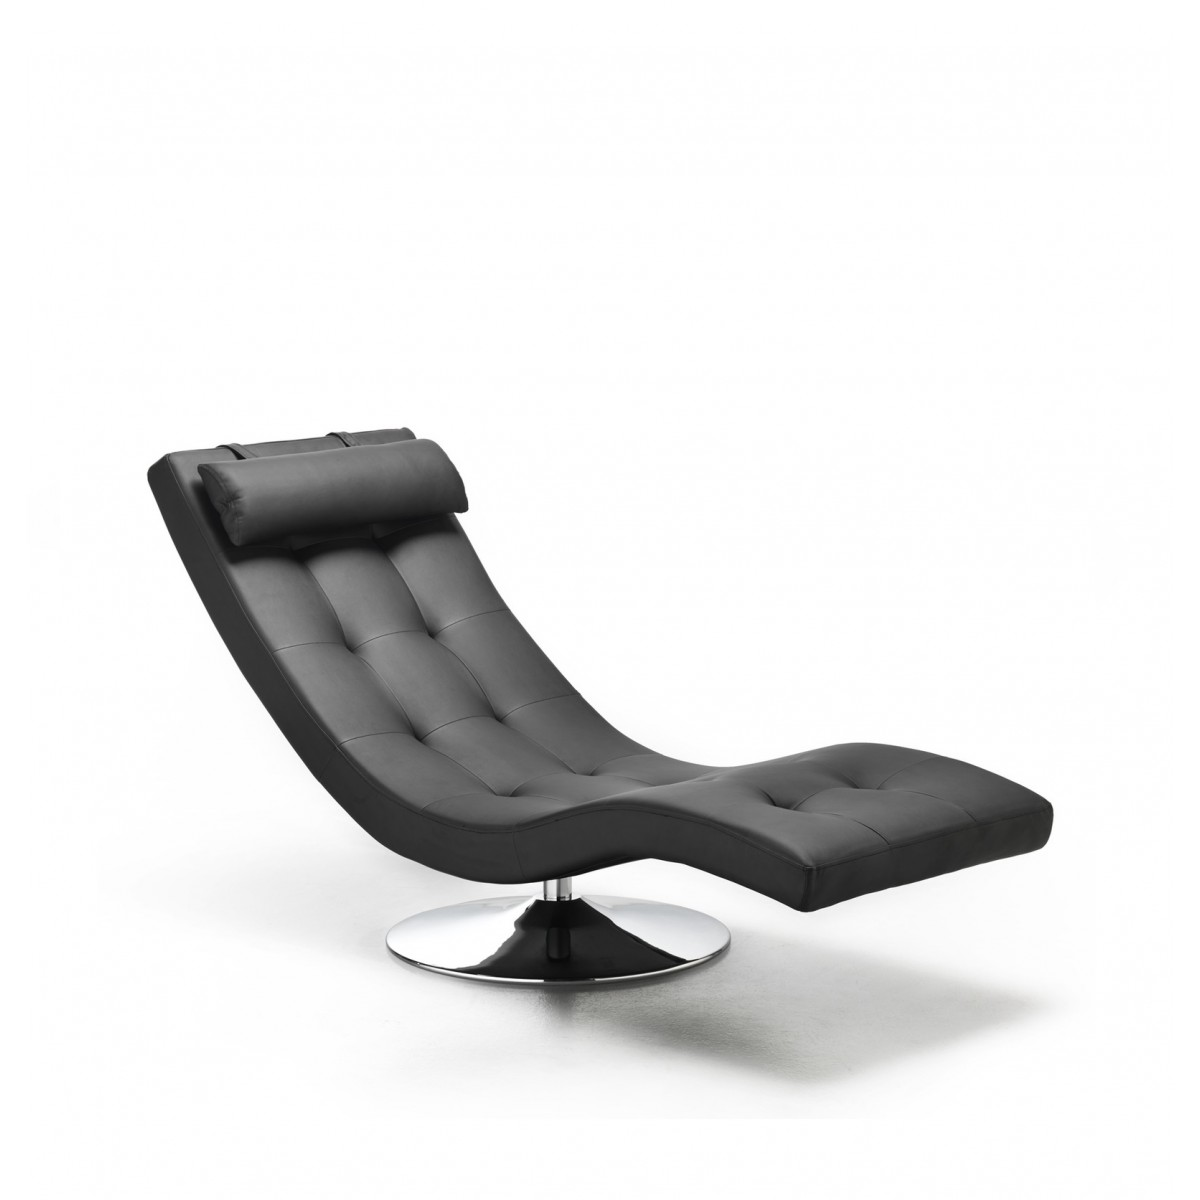 Chaise Longue Design Moderno.Chaise Longue Moderna Da Salotto In Ecopelle Colore Nero